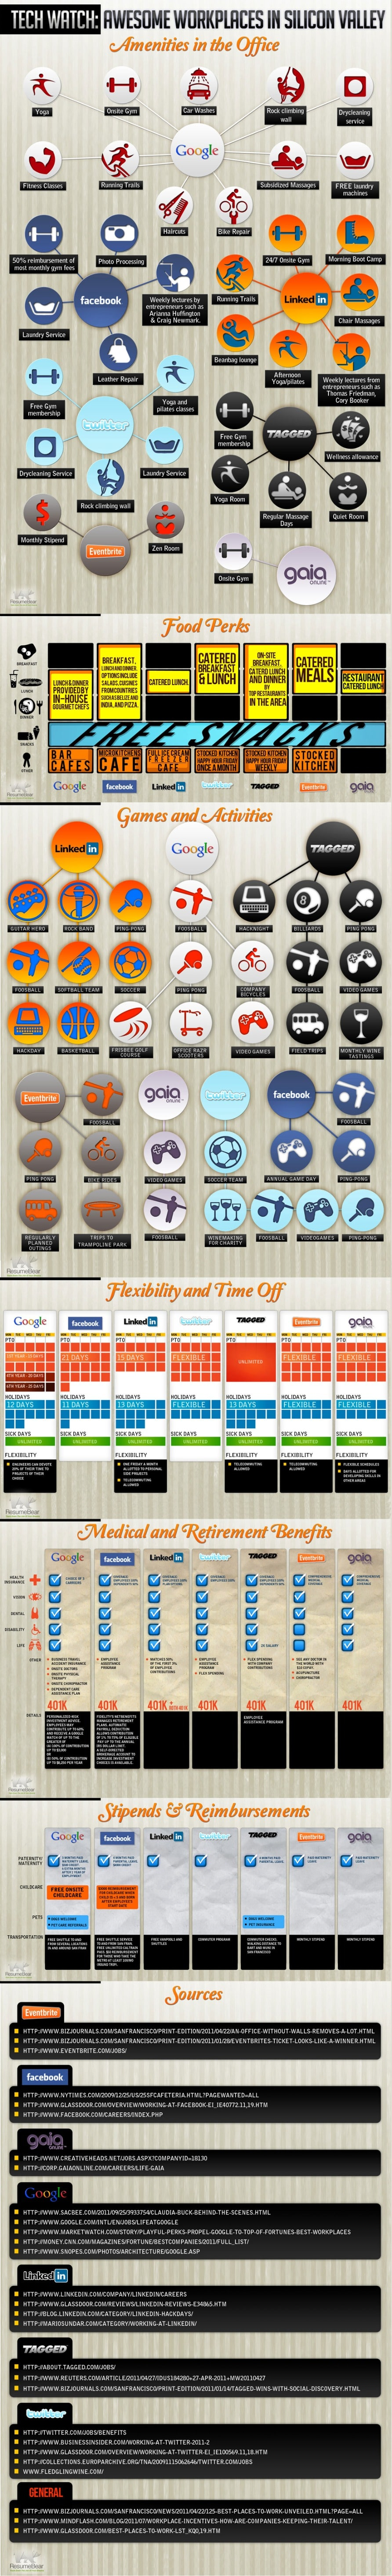 Social Networking Company Perks Infographic